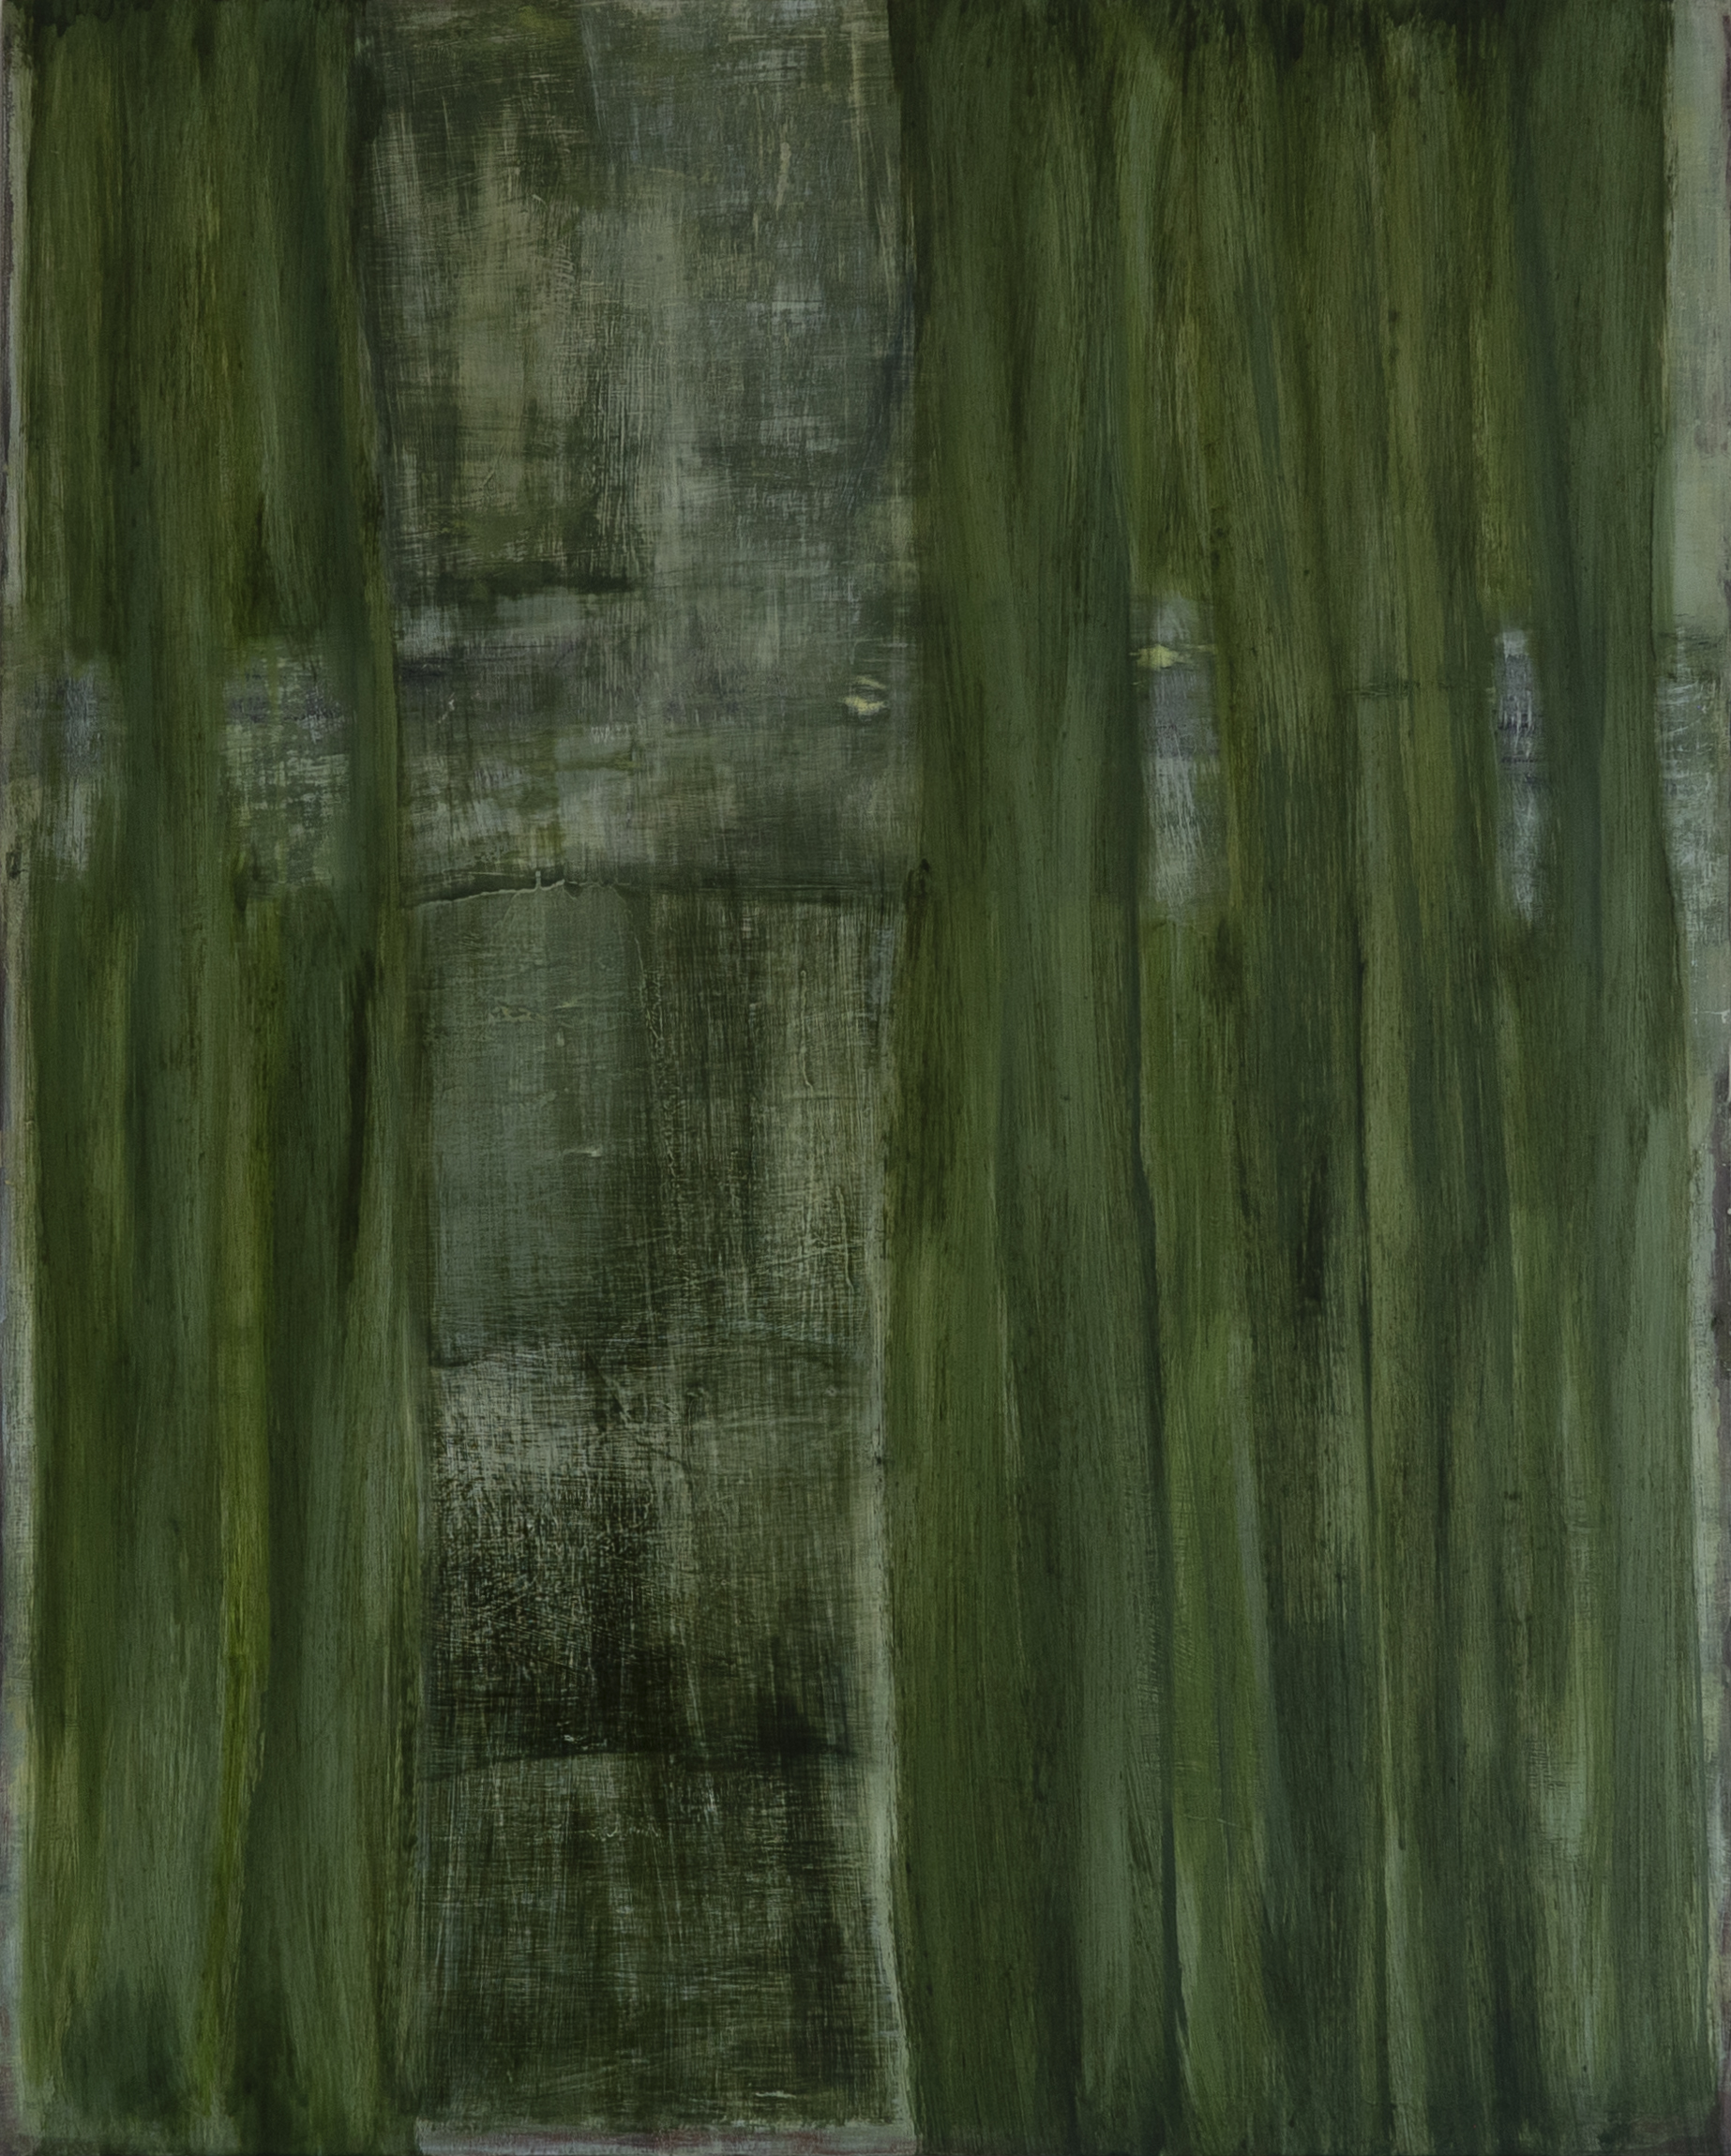 Vertical Green 2018 50 x 40 x 1.5in oil on wood photo: Sasha Schell